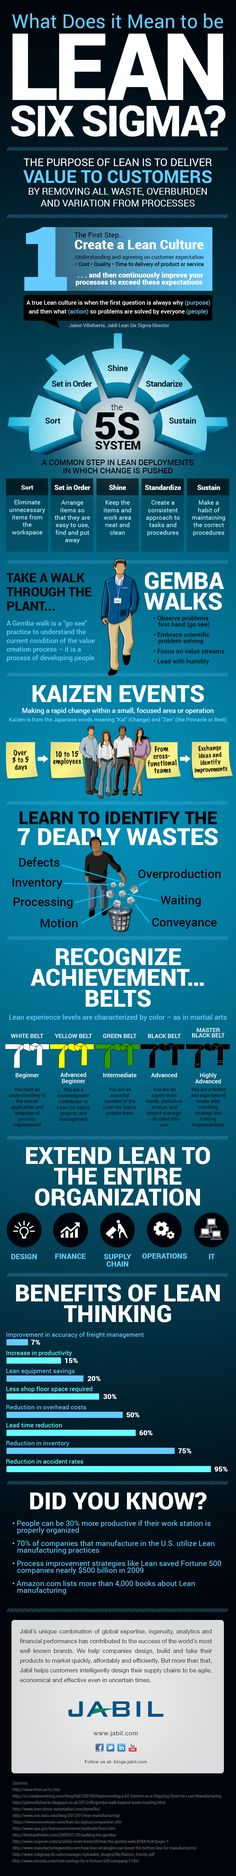 lean six sigma tools for 2014 | What Does It Mean to Be Lean? An Infographic Explanation